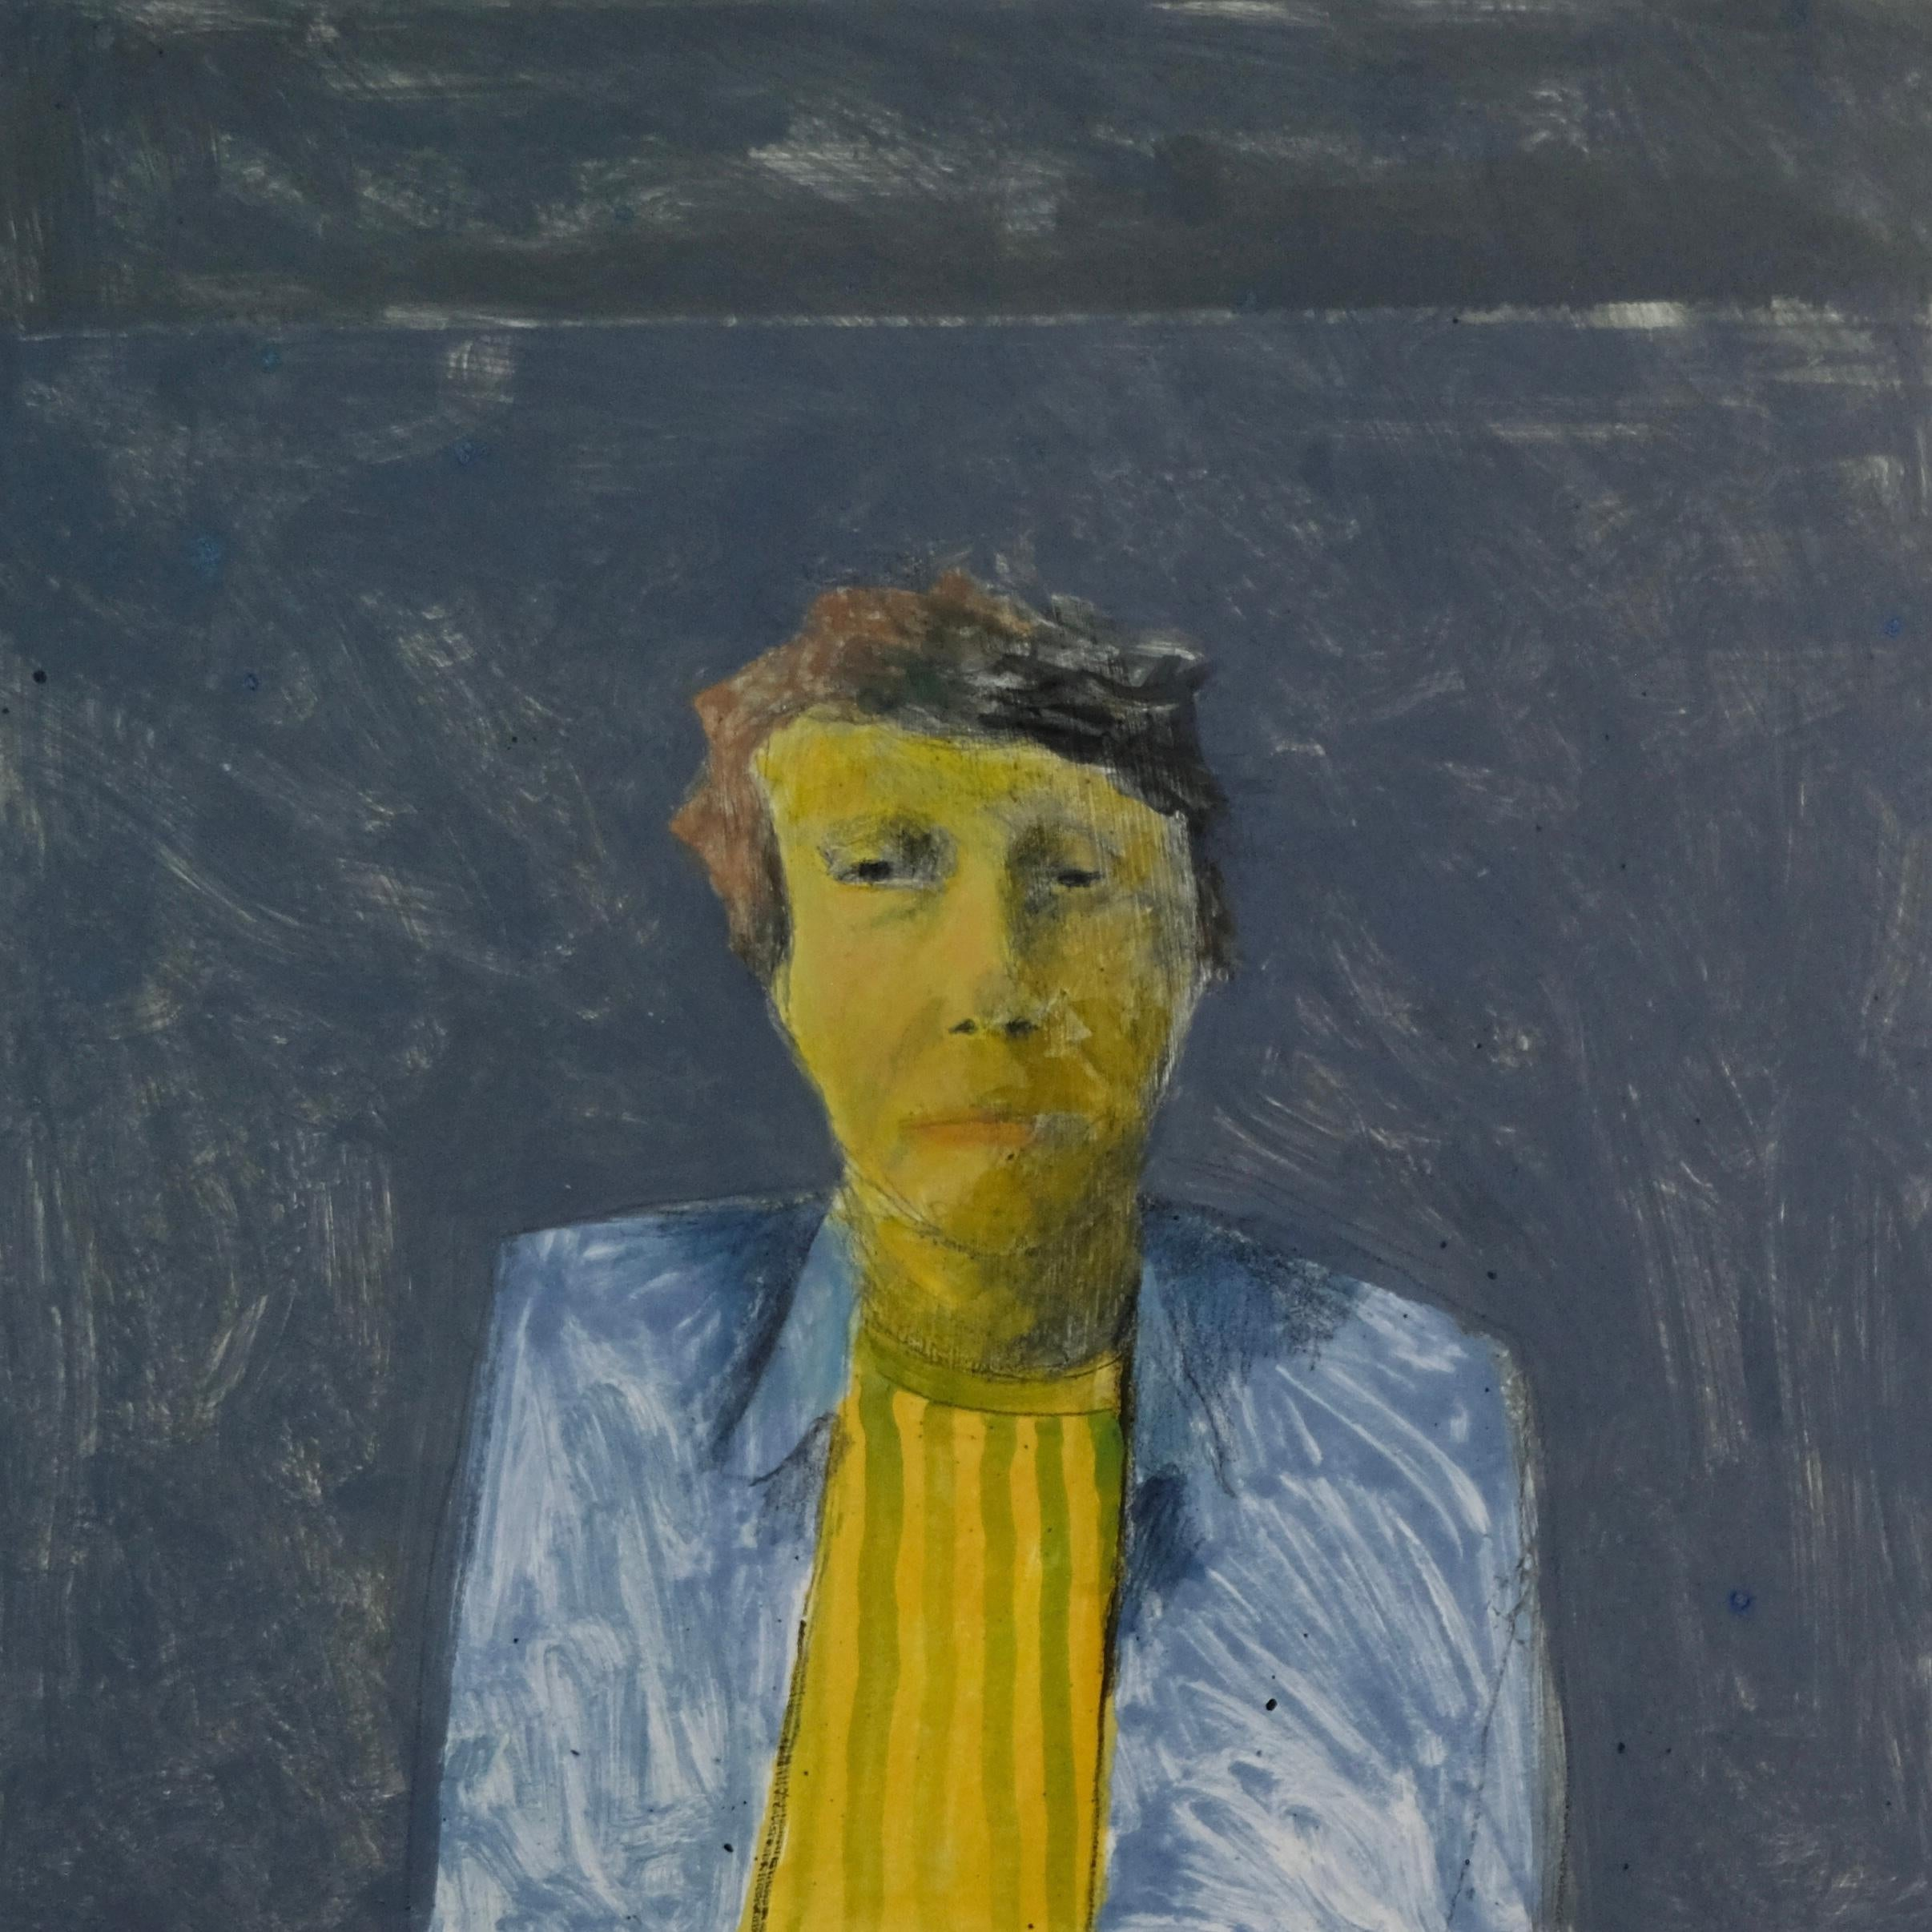 Alexander Plots the World, mixed media portrait of young man, yellow and blue